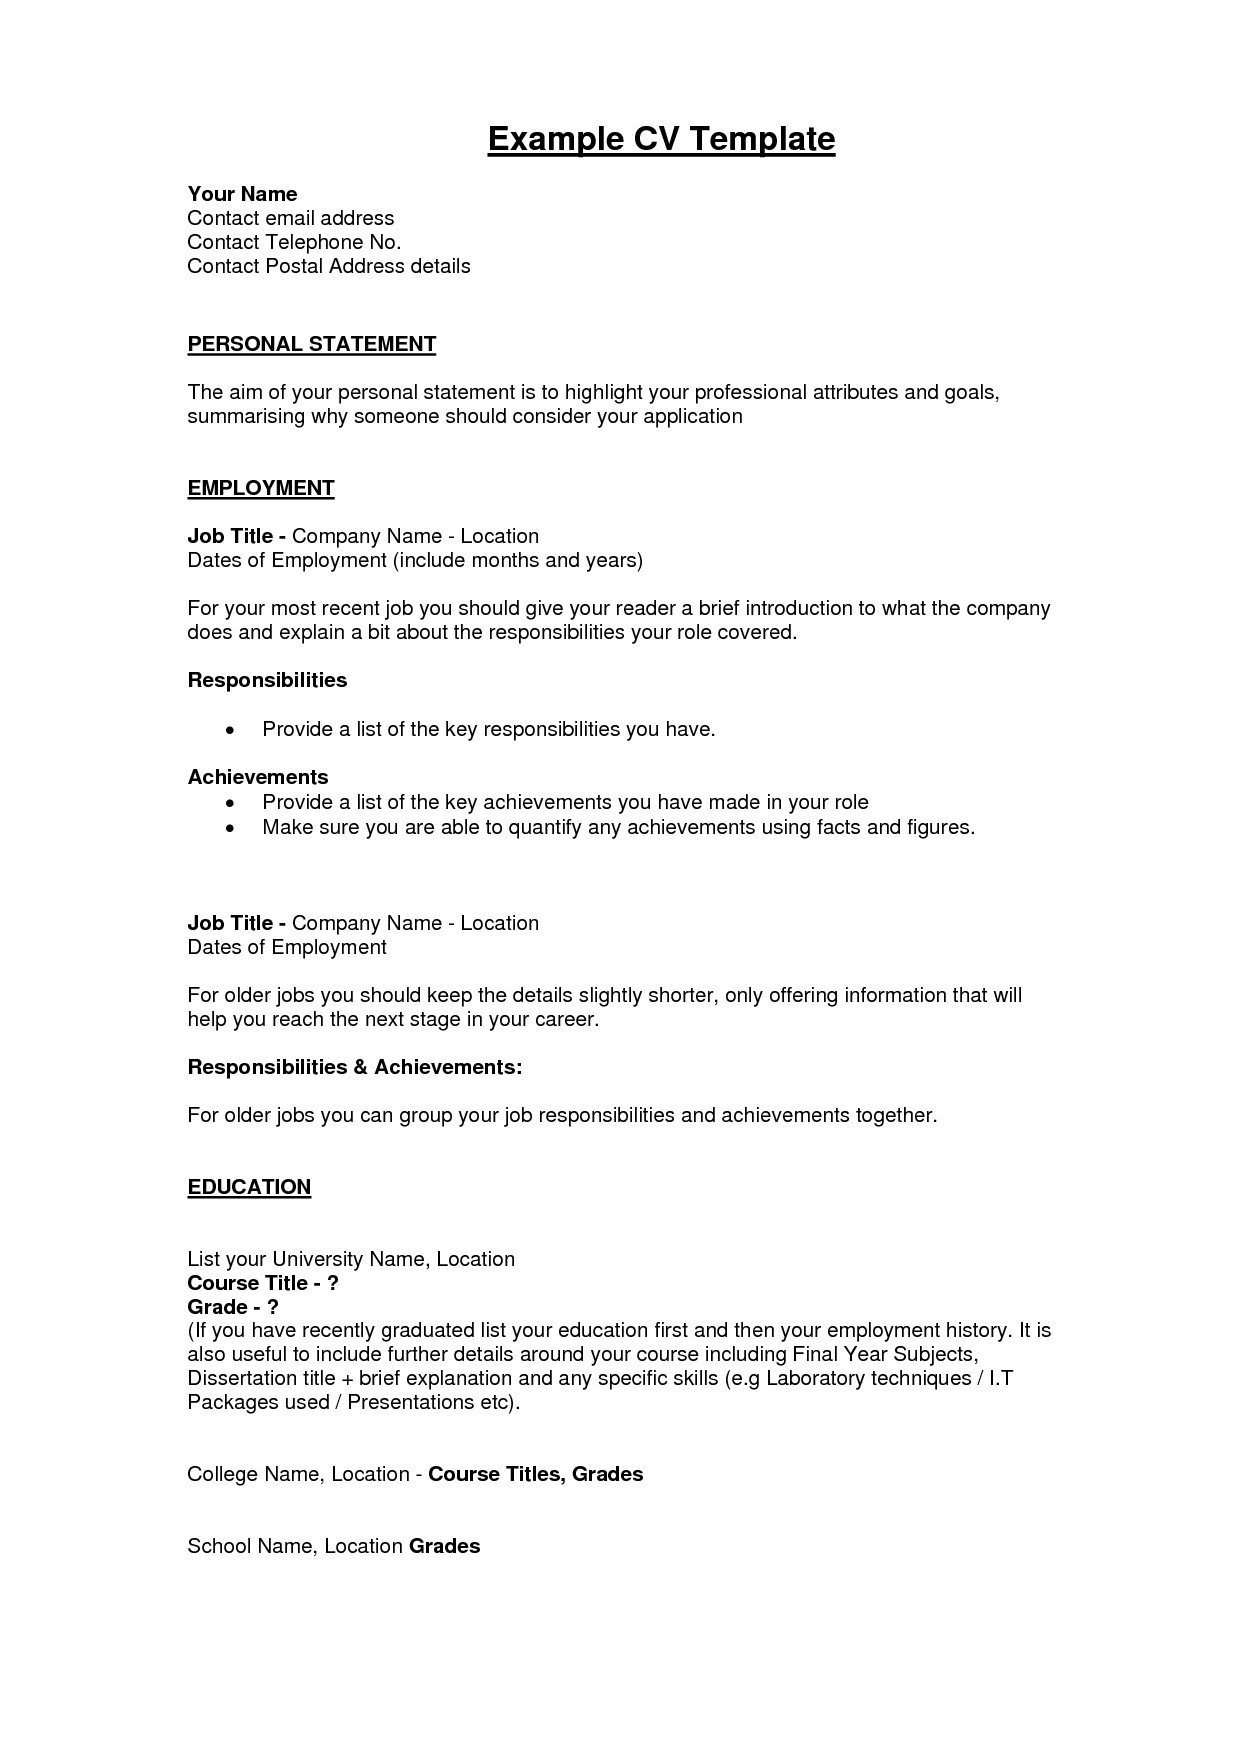 Hobbies for Resume - Cv Template Hobbies and Interests New No Experience Resume Template